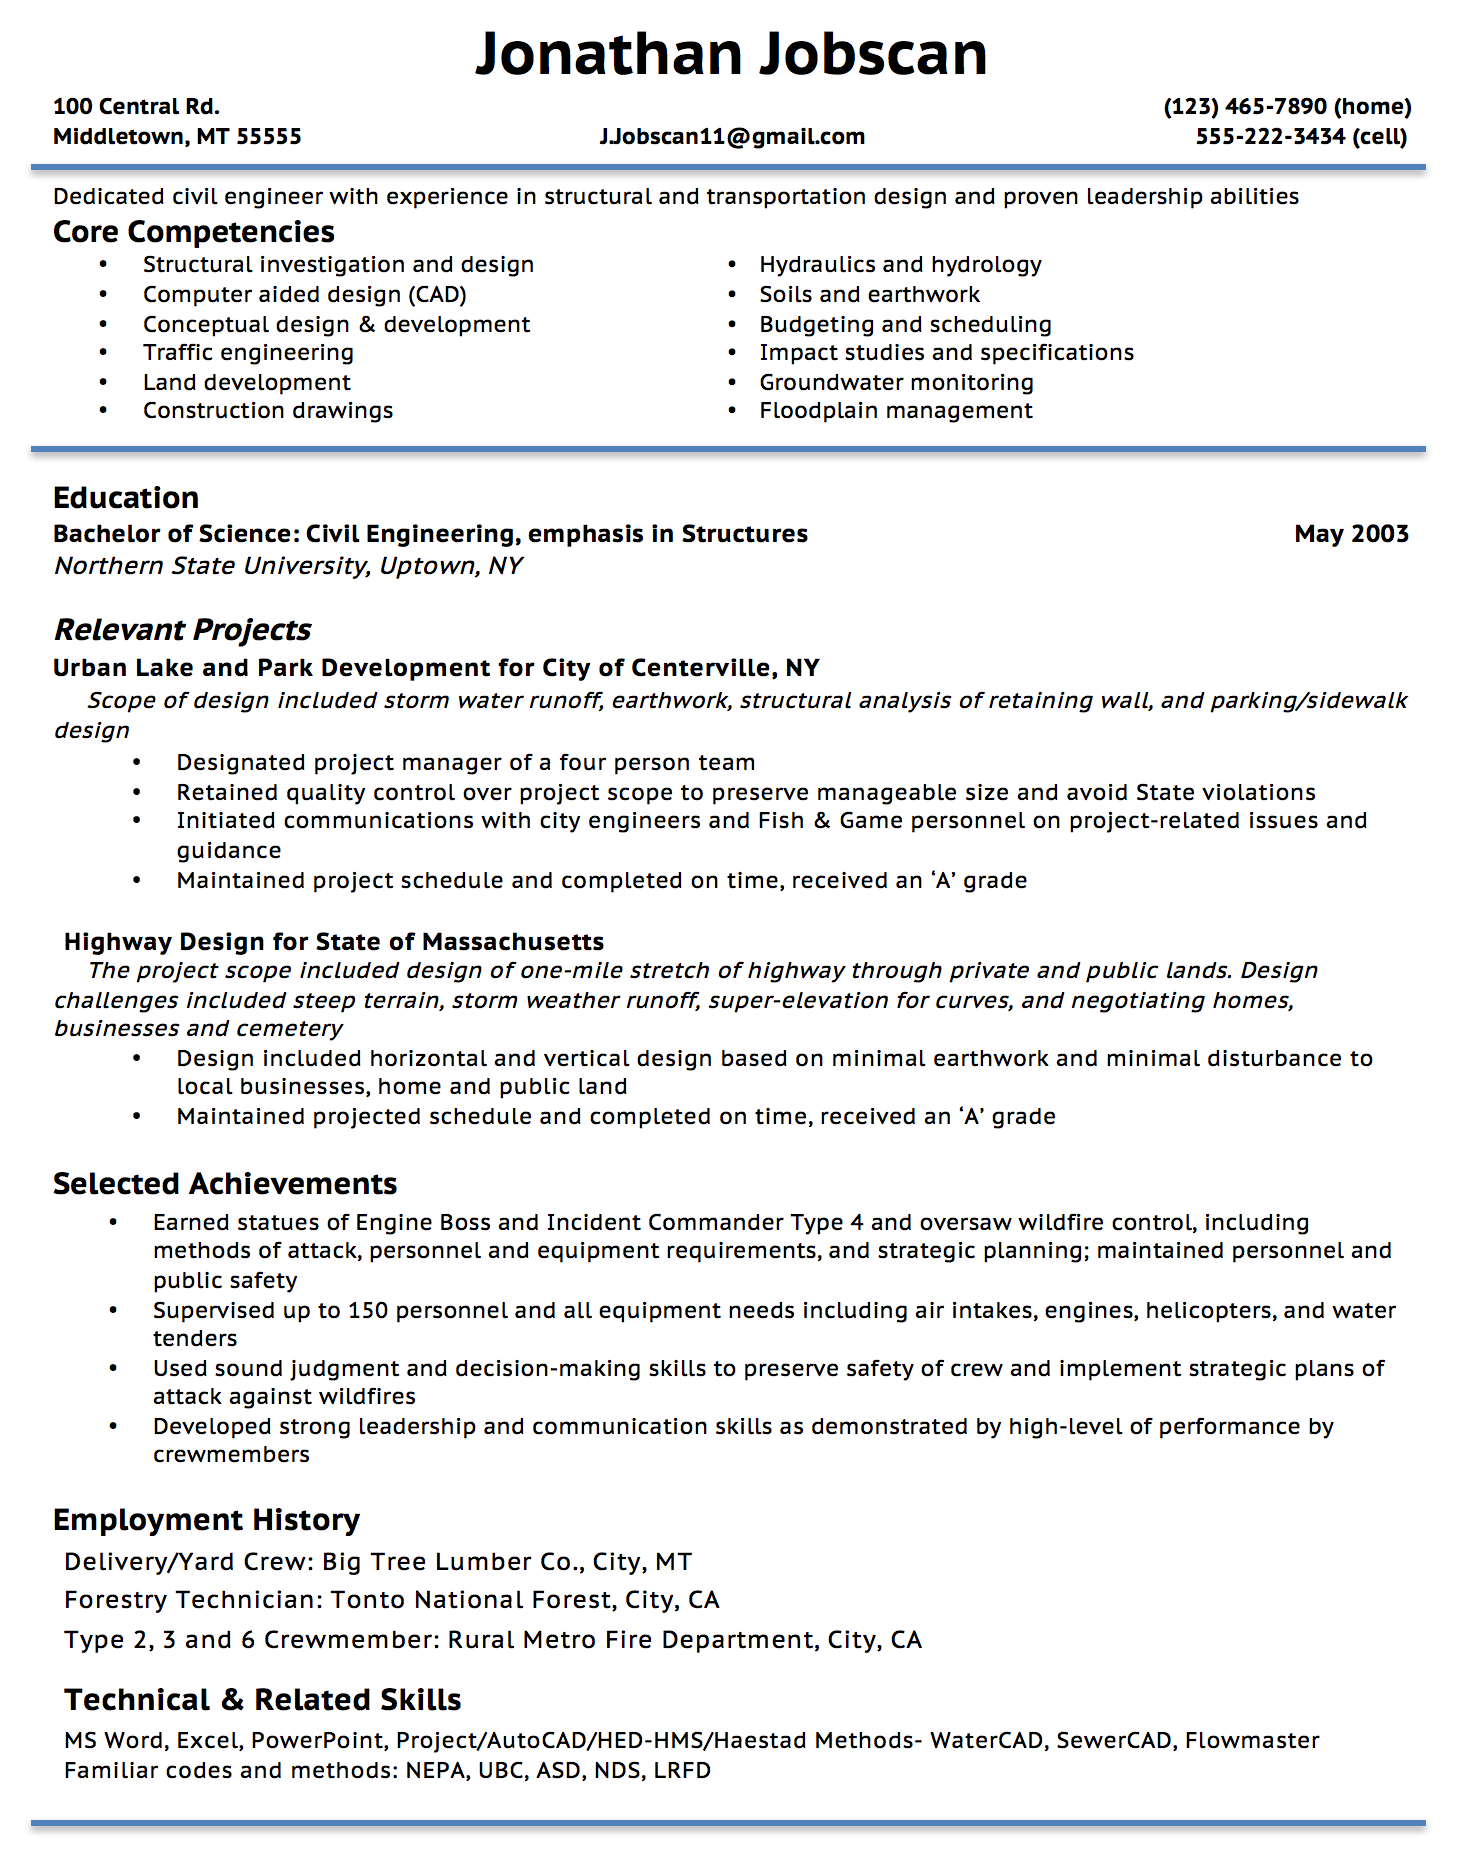 Opposenewapstandardsus  Fascinating Resume Writing Guide  Jobscan With Glamorous Example Of A Functional Resume Format With Lovely Volunteer Resume Sample Also Leadership Skills For Resume In Addition Best Resumes Examples And Recruiter Resume Sample As Well As Where To Buy Resume Paper Additionally Social Work Resumes From Jobscanco With Opposenewapstandardsus  Glamorous Resume Writing Guide  Jobscan With Lovely Example Of A Functional Resume Format And Fascinating Volunteer Resume Sample Also Leadership Skills For Resume In Addition Best Resumes Examples From Jobscanco